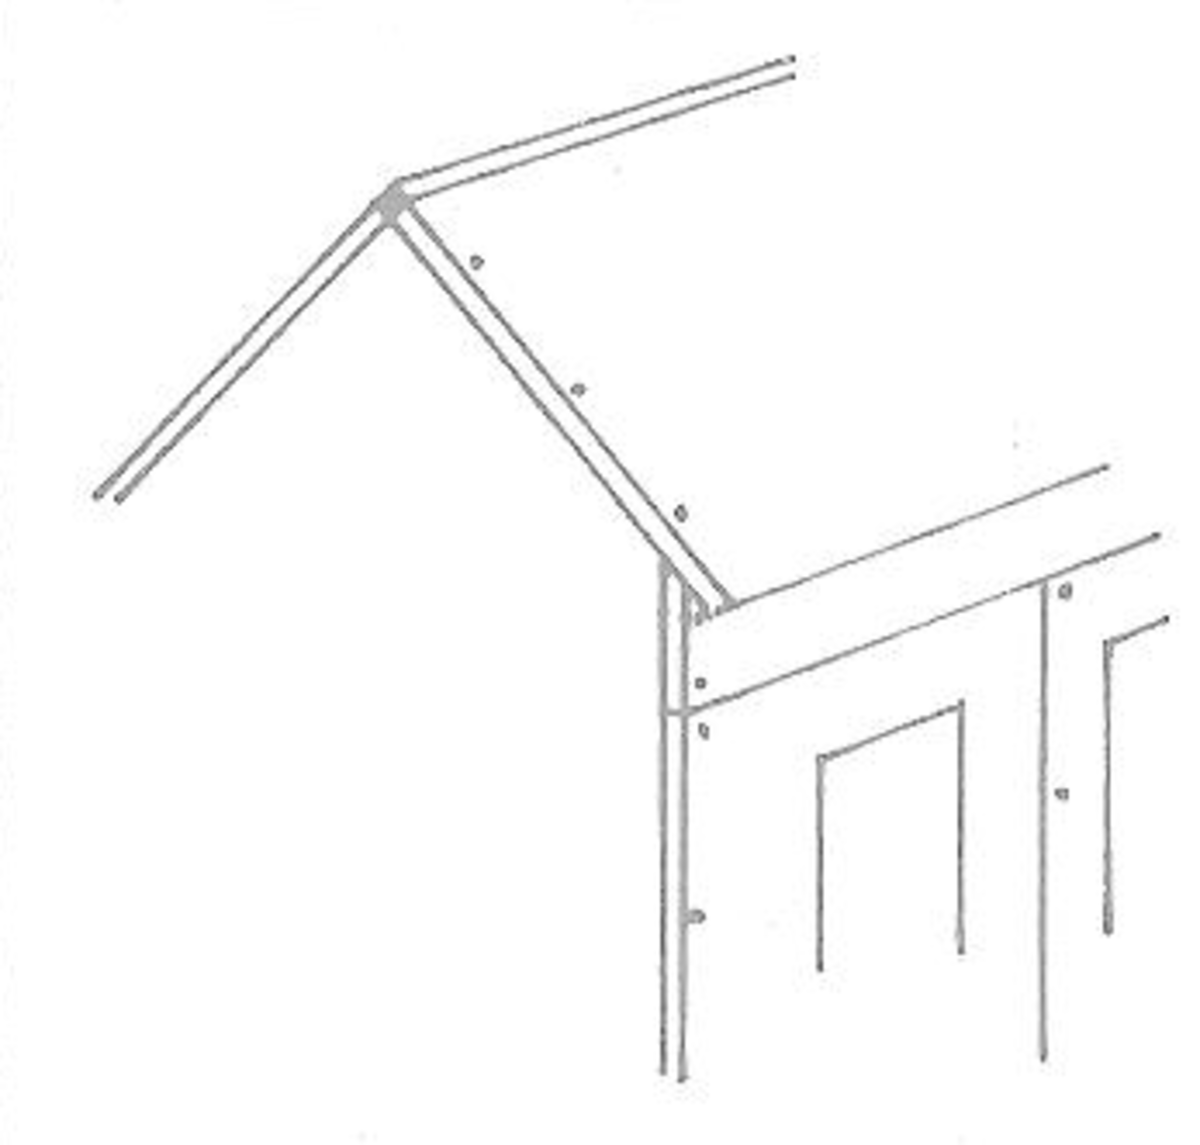 Figure 8 - Apex of Dollhouse Roof